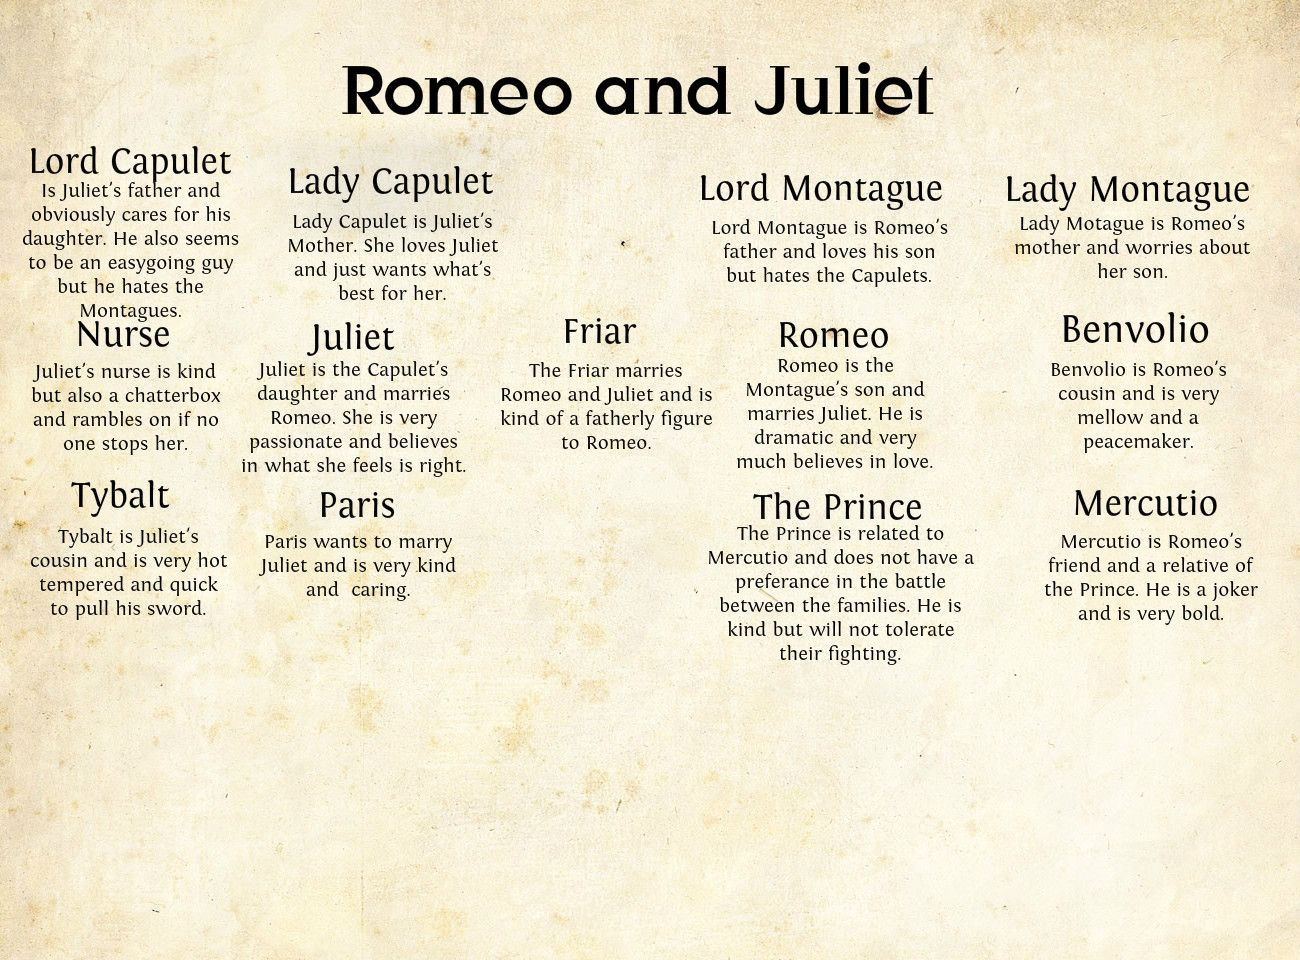 romeo and juliet main characteristics of an important relationship 6 romeo and juliet as a story of a revolt against authority 7 contrast between the characters of mercutio and tybalt why does mercutio hate tybalt the conclusion for romeo and juliet essay should tie together all important themes and answer significant questions that run throughout your.